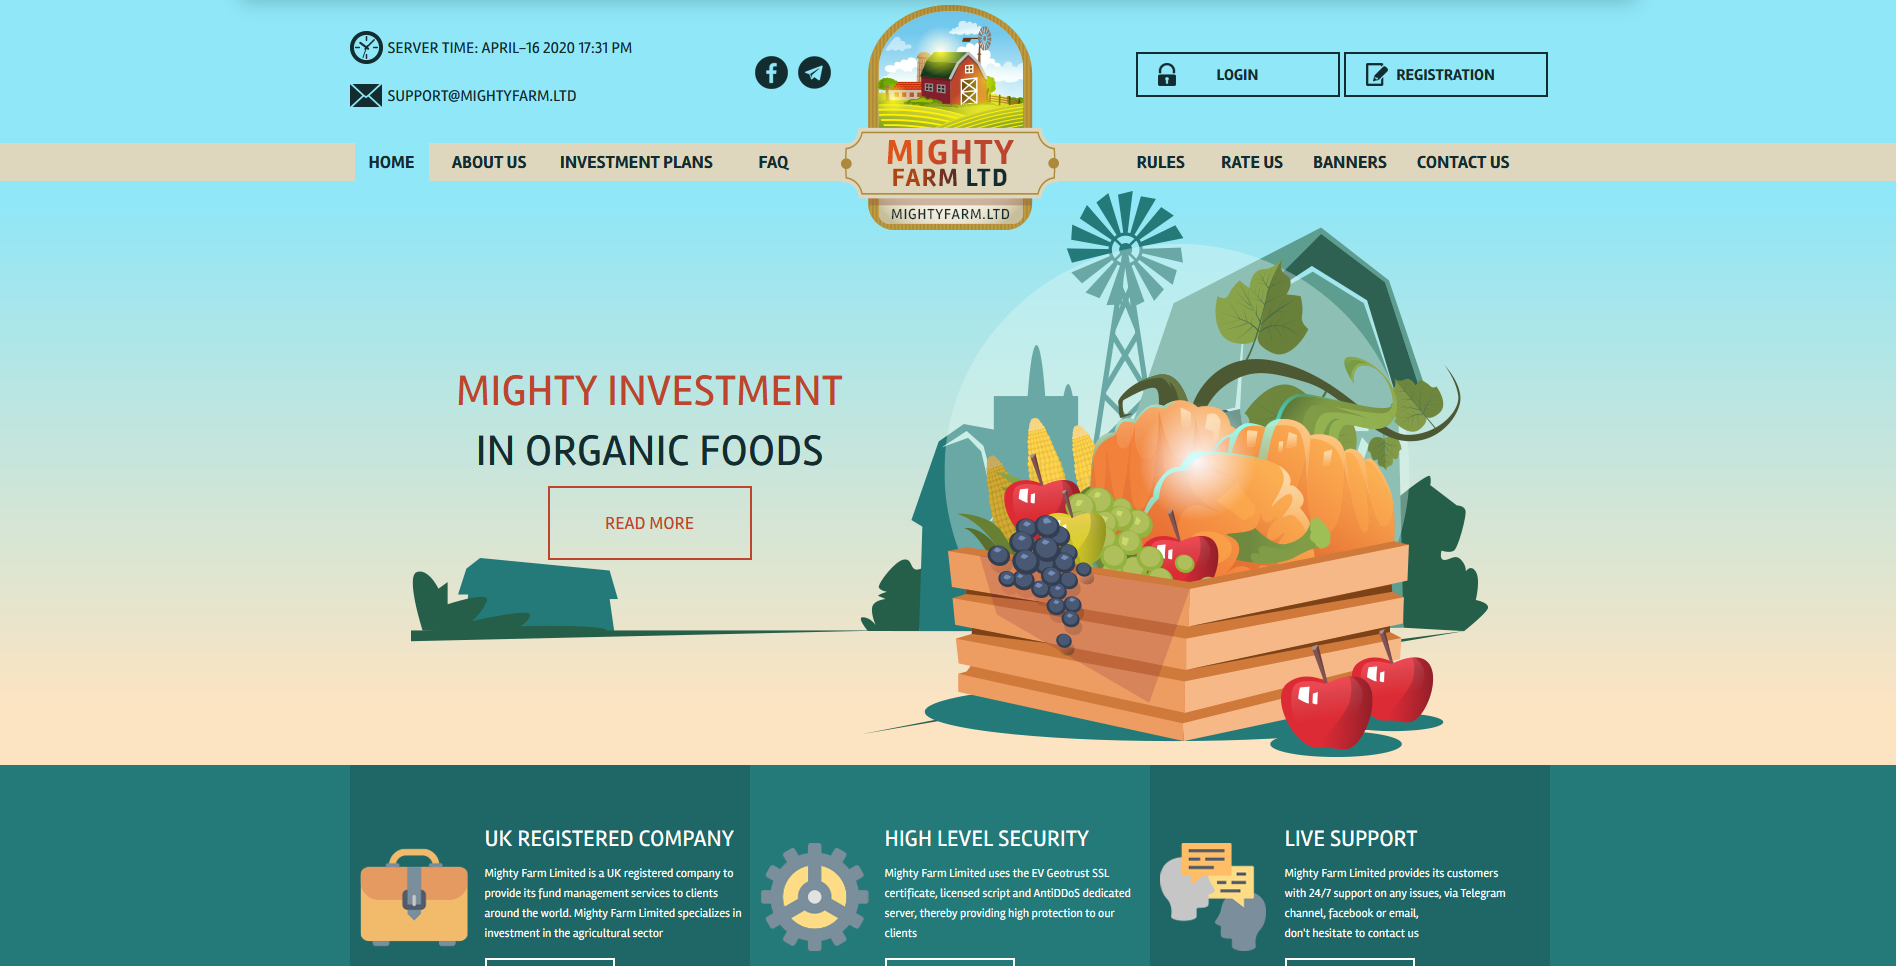 MightyFarm - mightyfarm.ltd